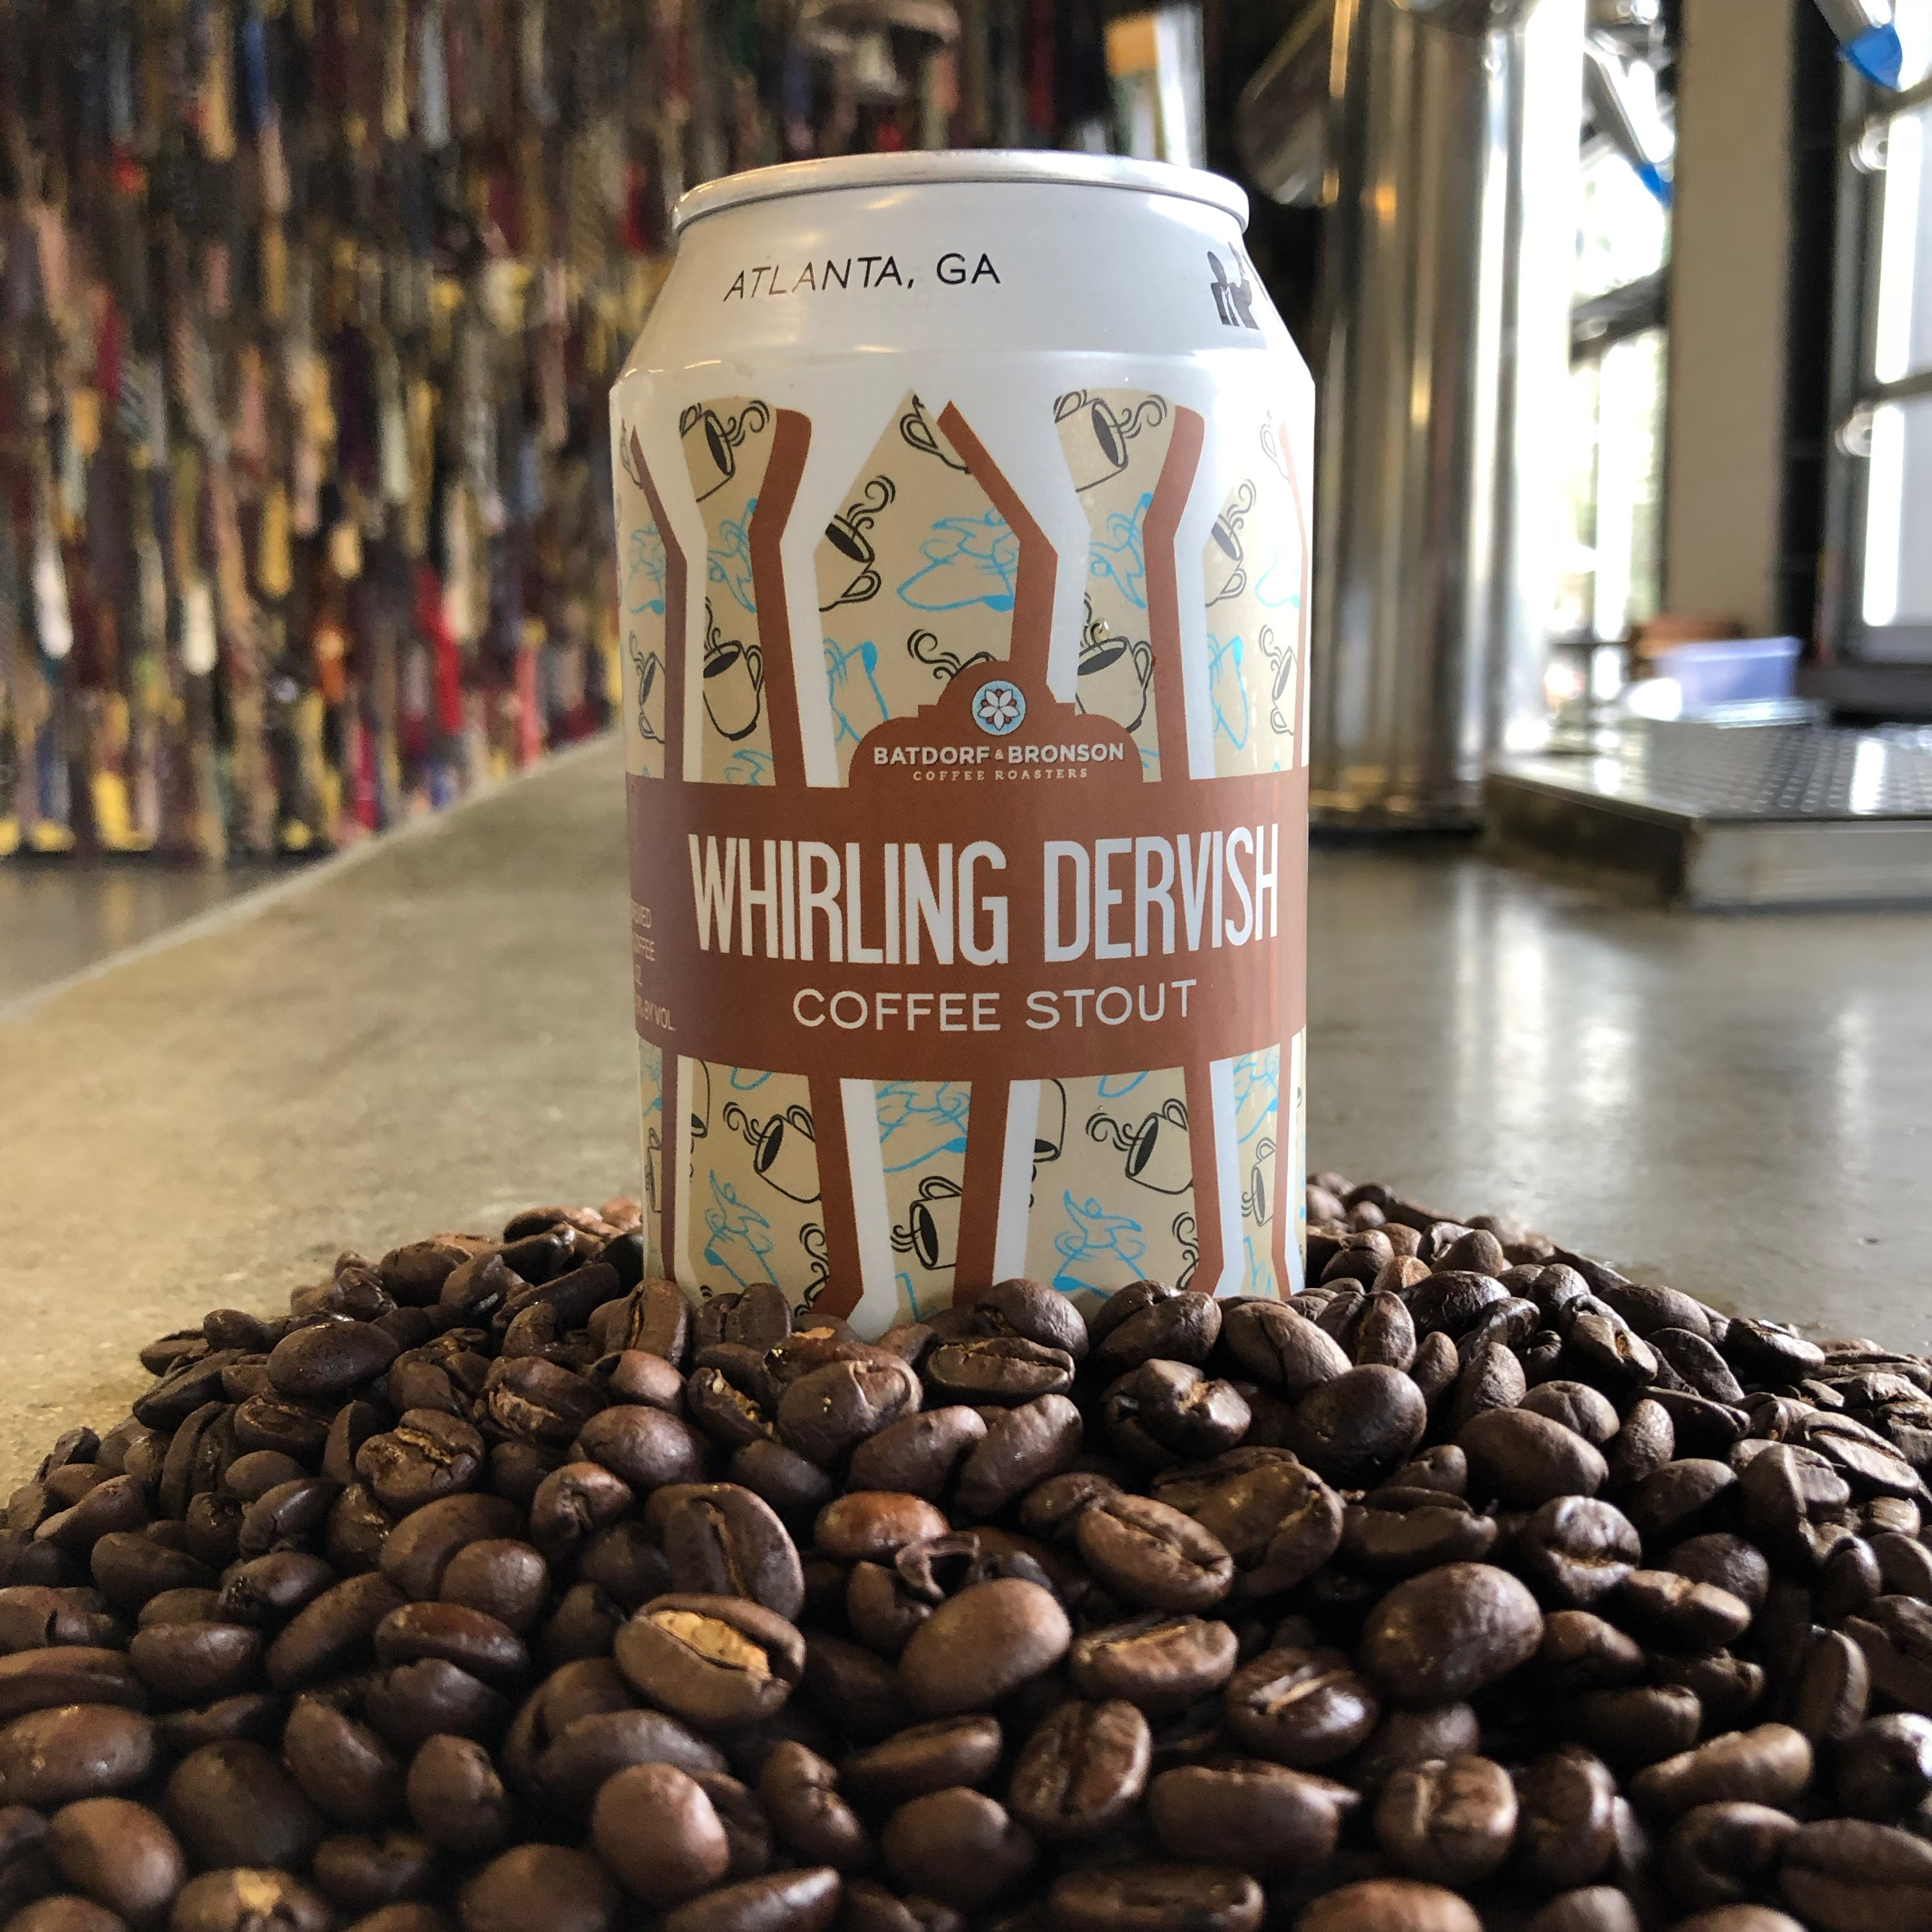 Whirling Dervish is a dry Irish stout with coffee from our friends at Batdorf & Bronson.